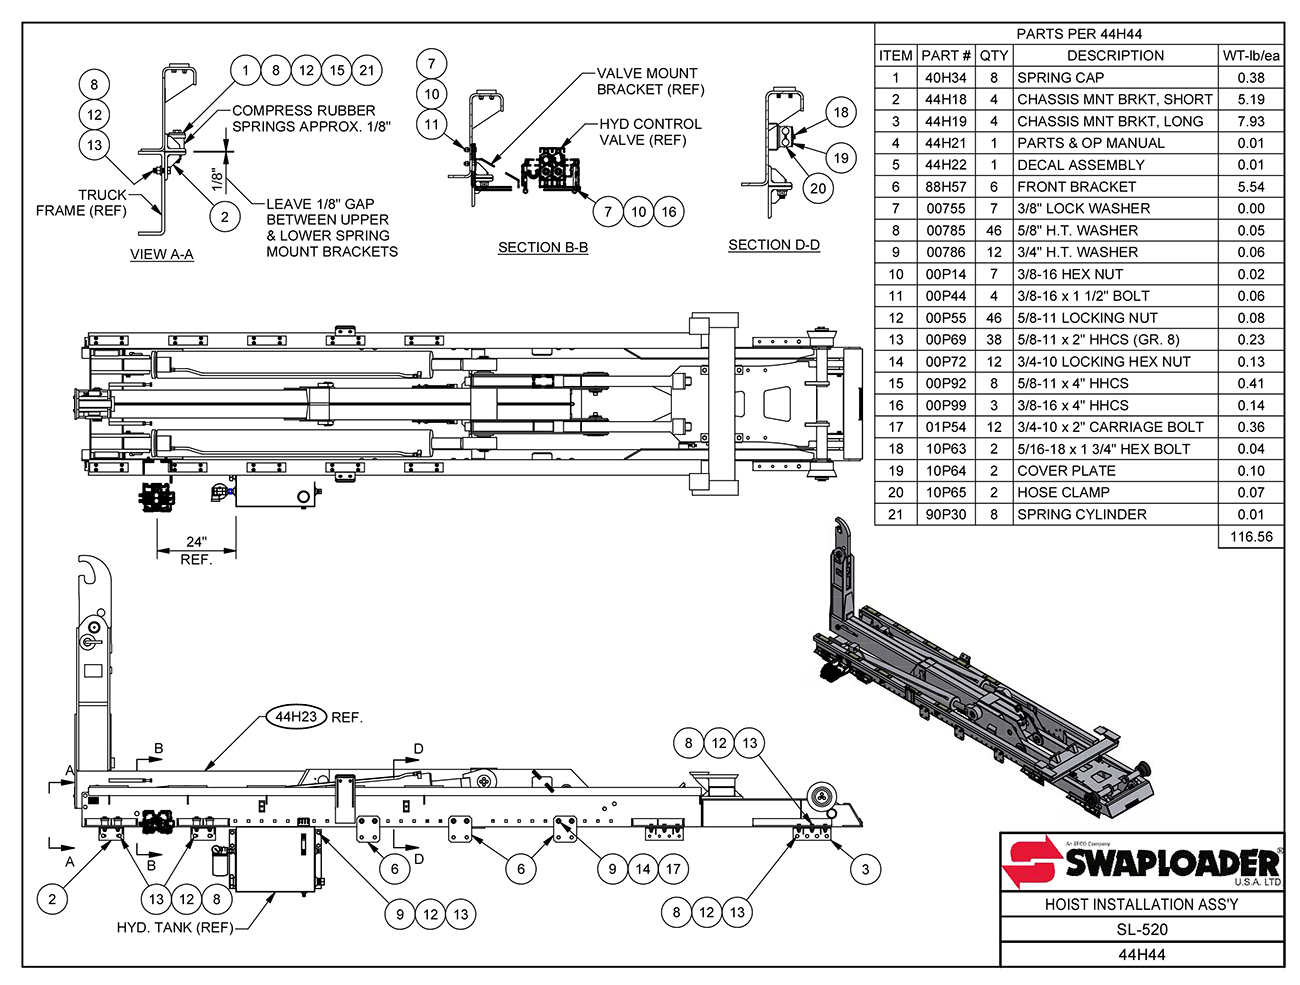 SL-520 Hoist Installation Assembly Diagram